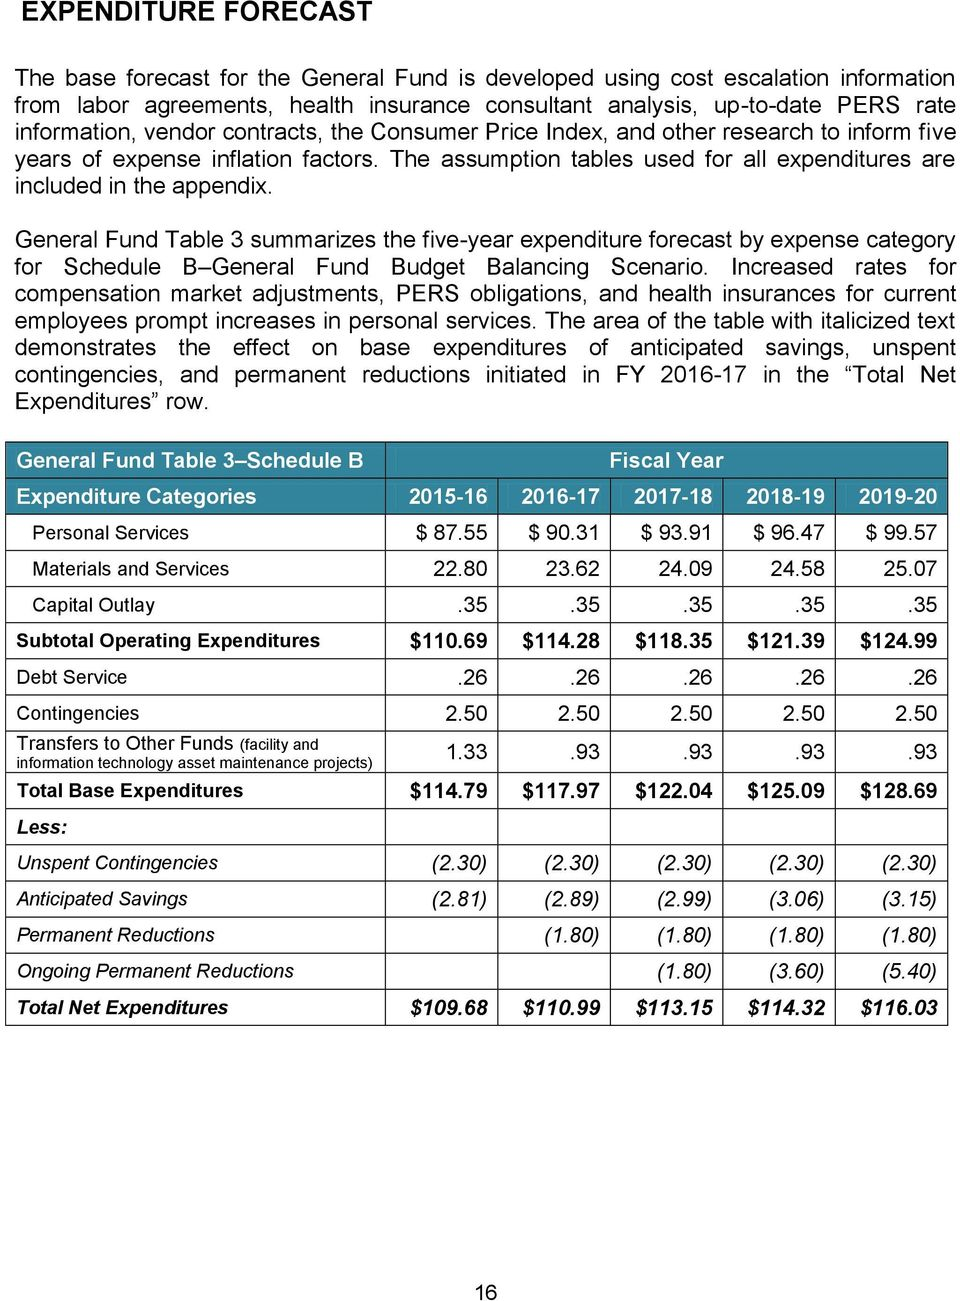 The assumption tables used for all expenditures are included in the appendix.